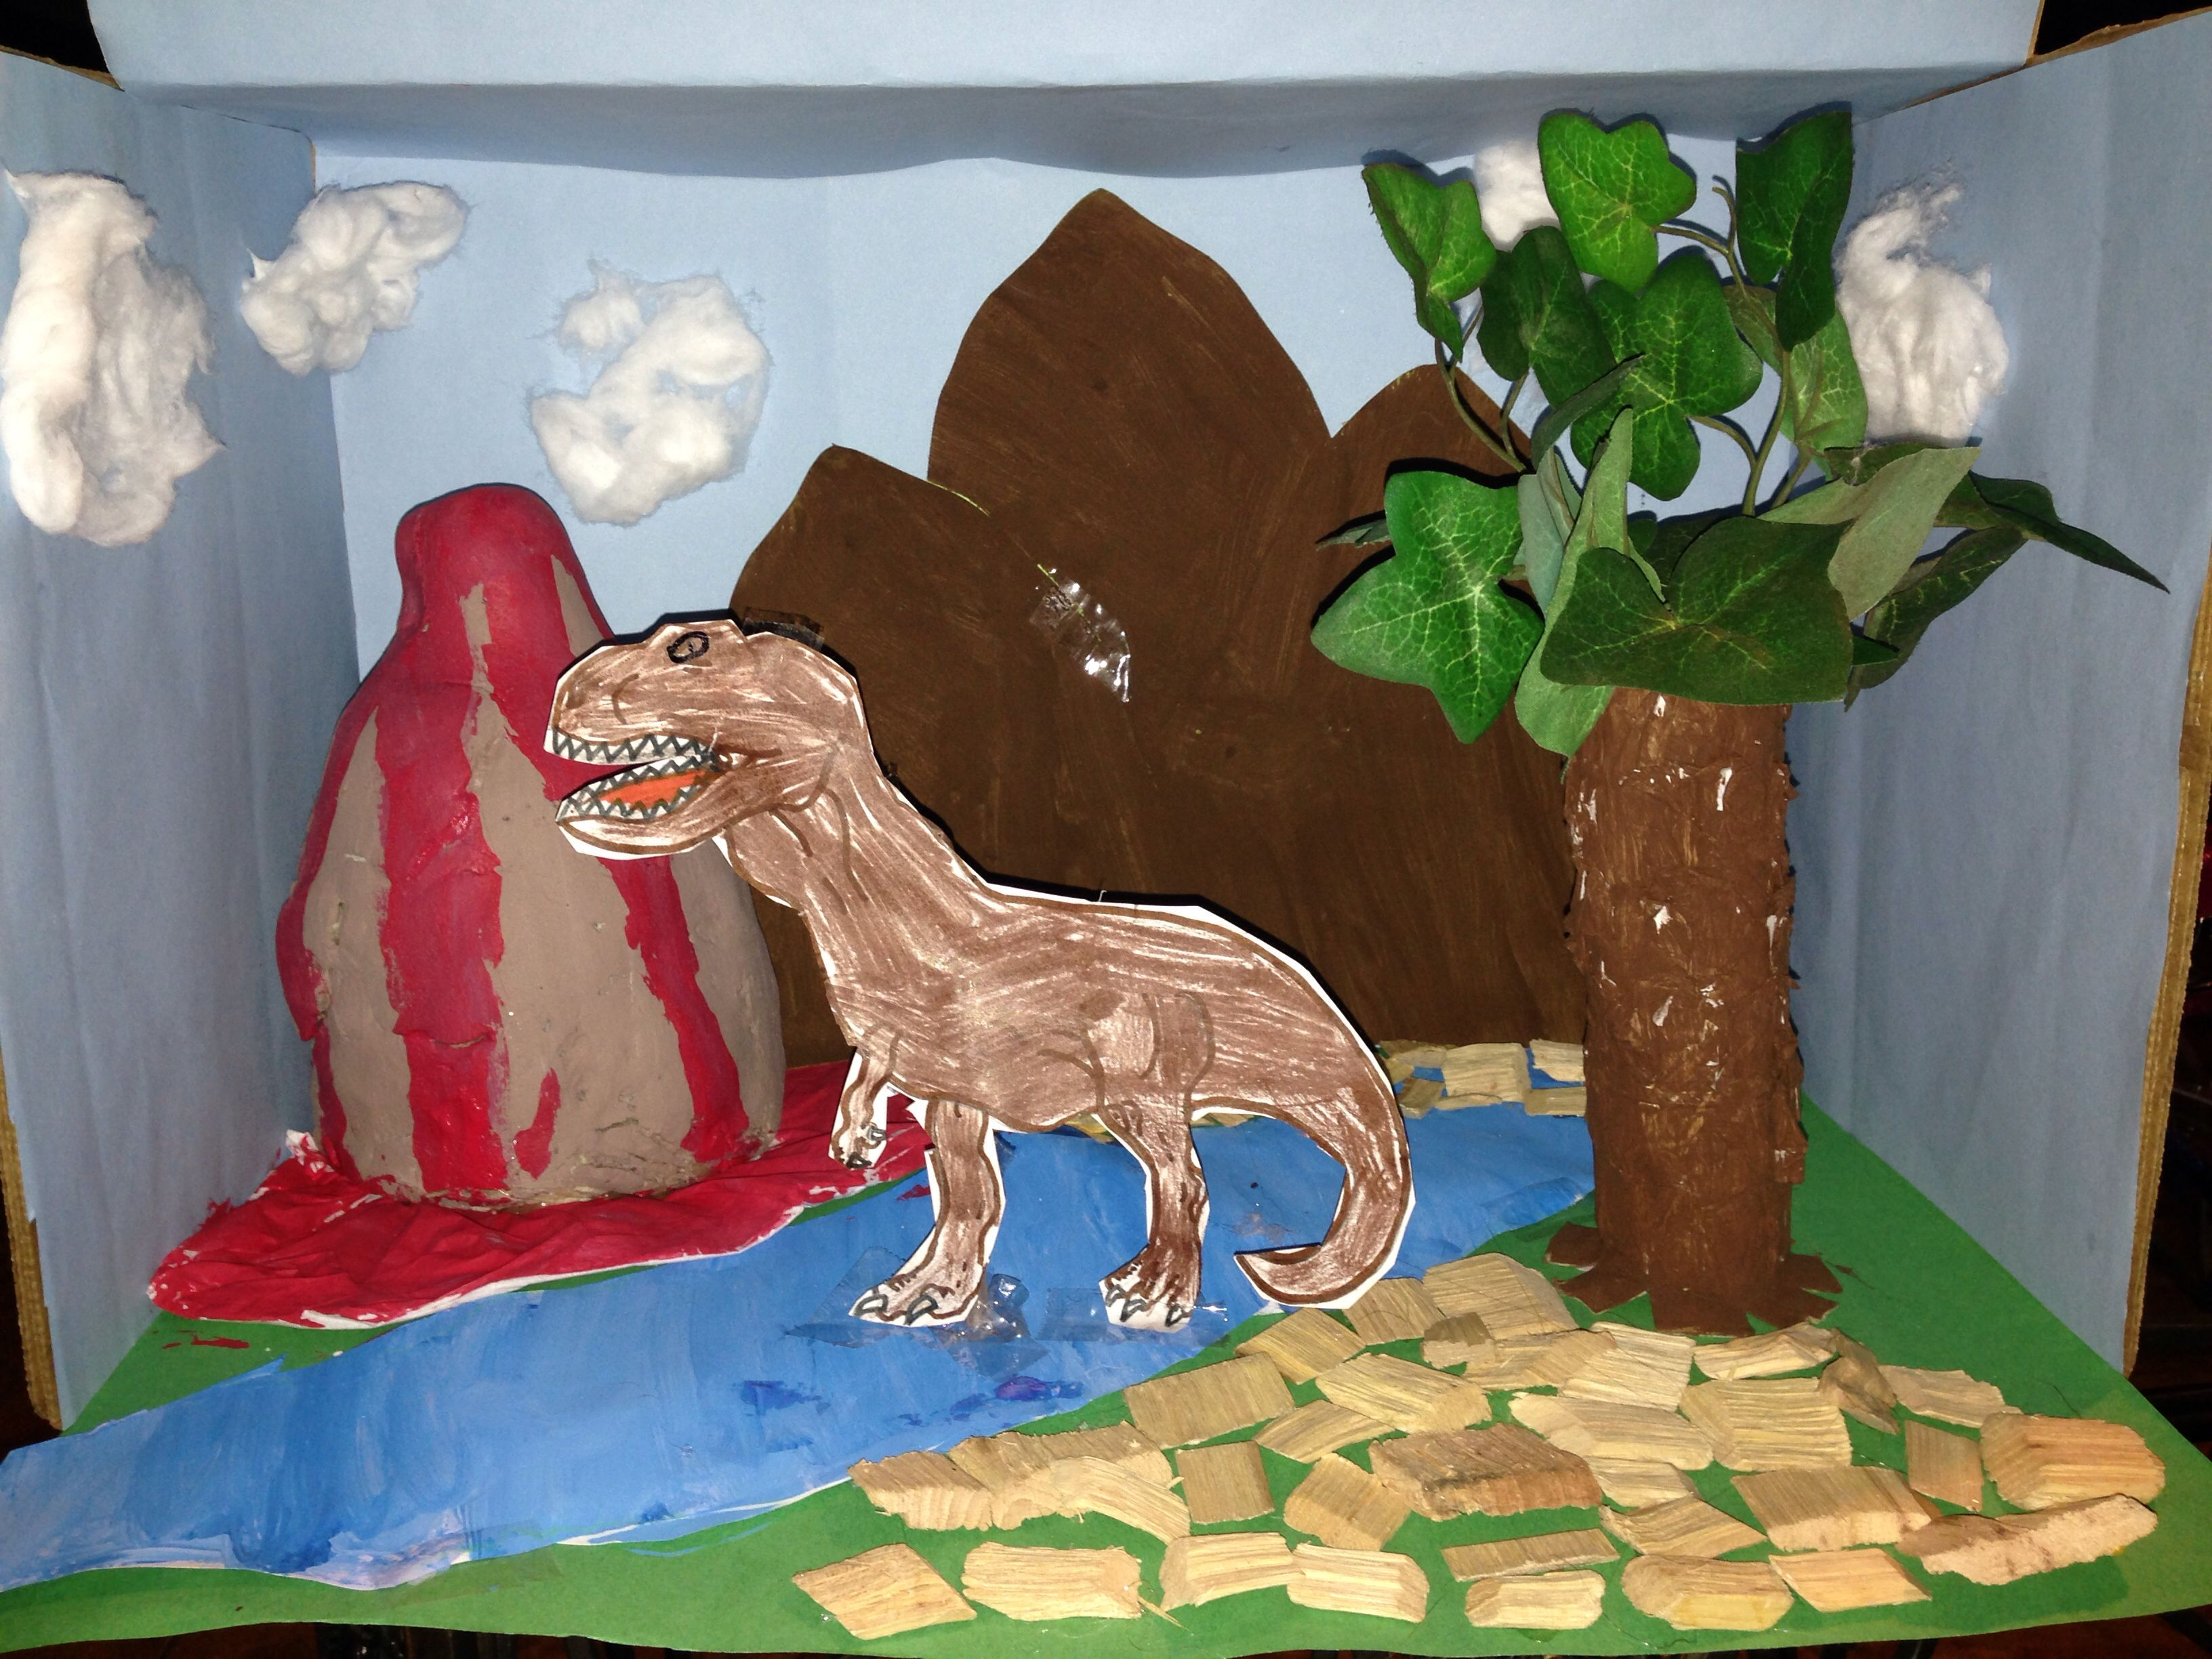 Dinosaur Diorama - ideas for Isaac's project